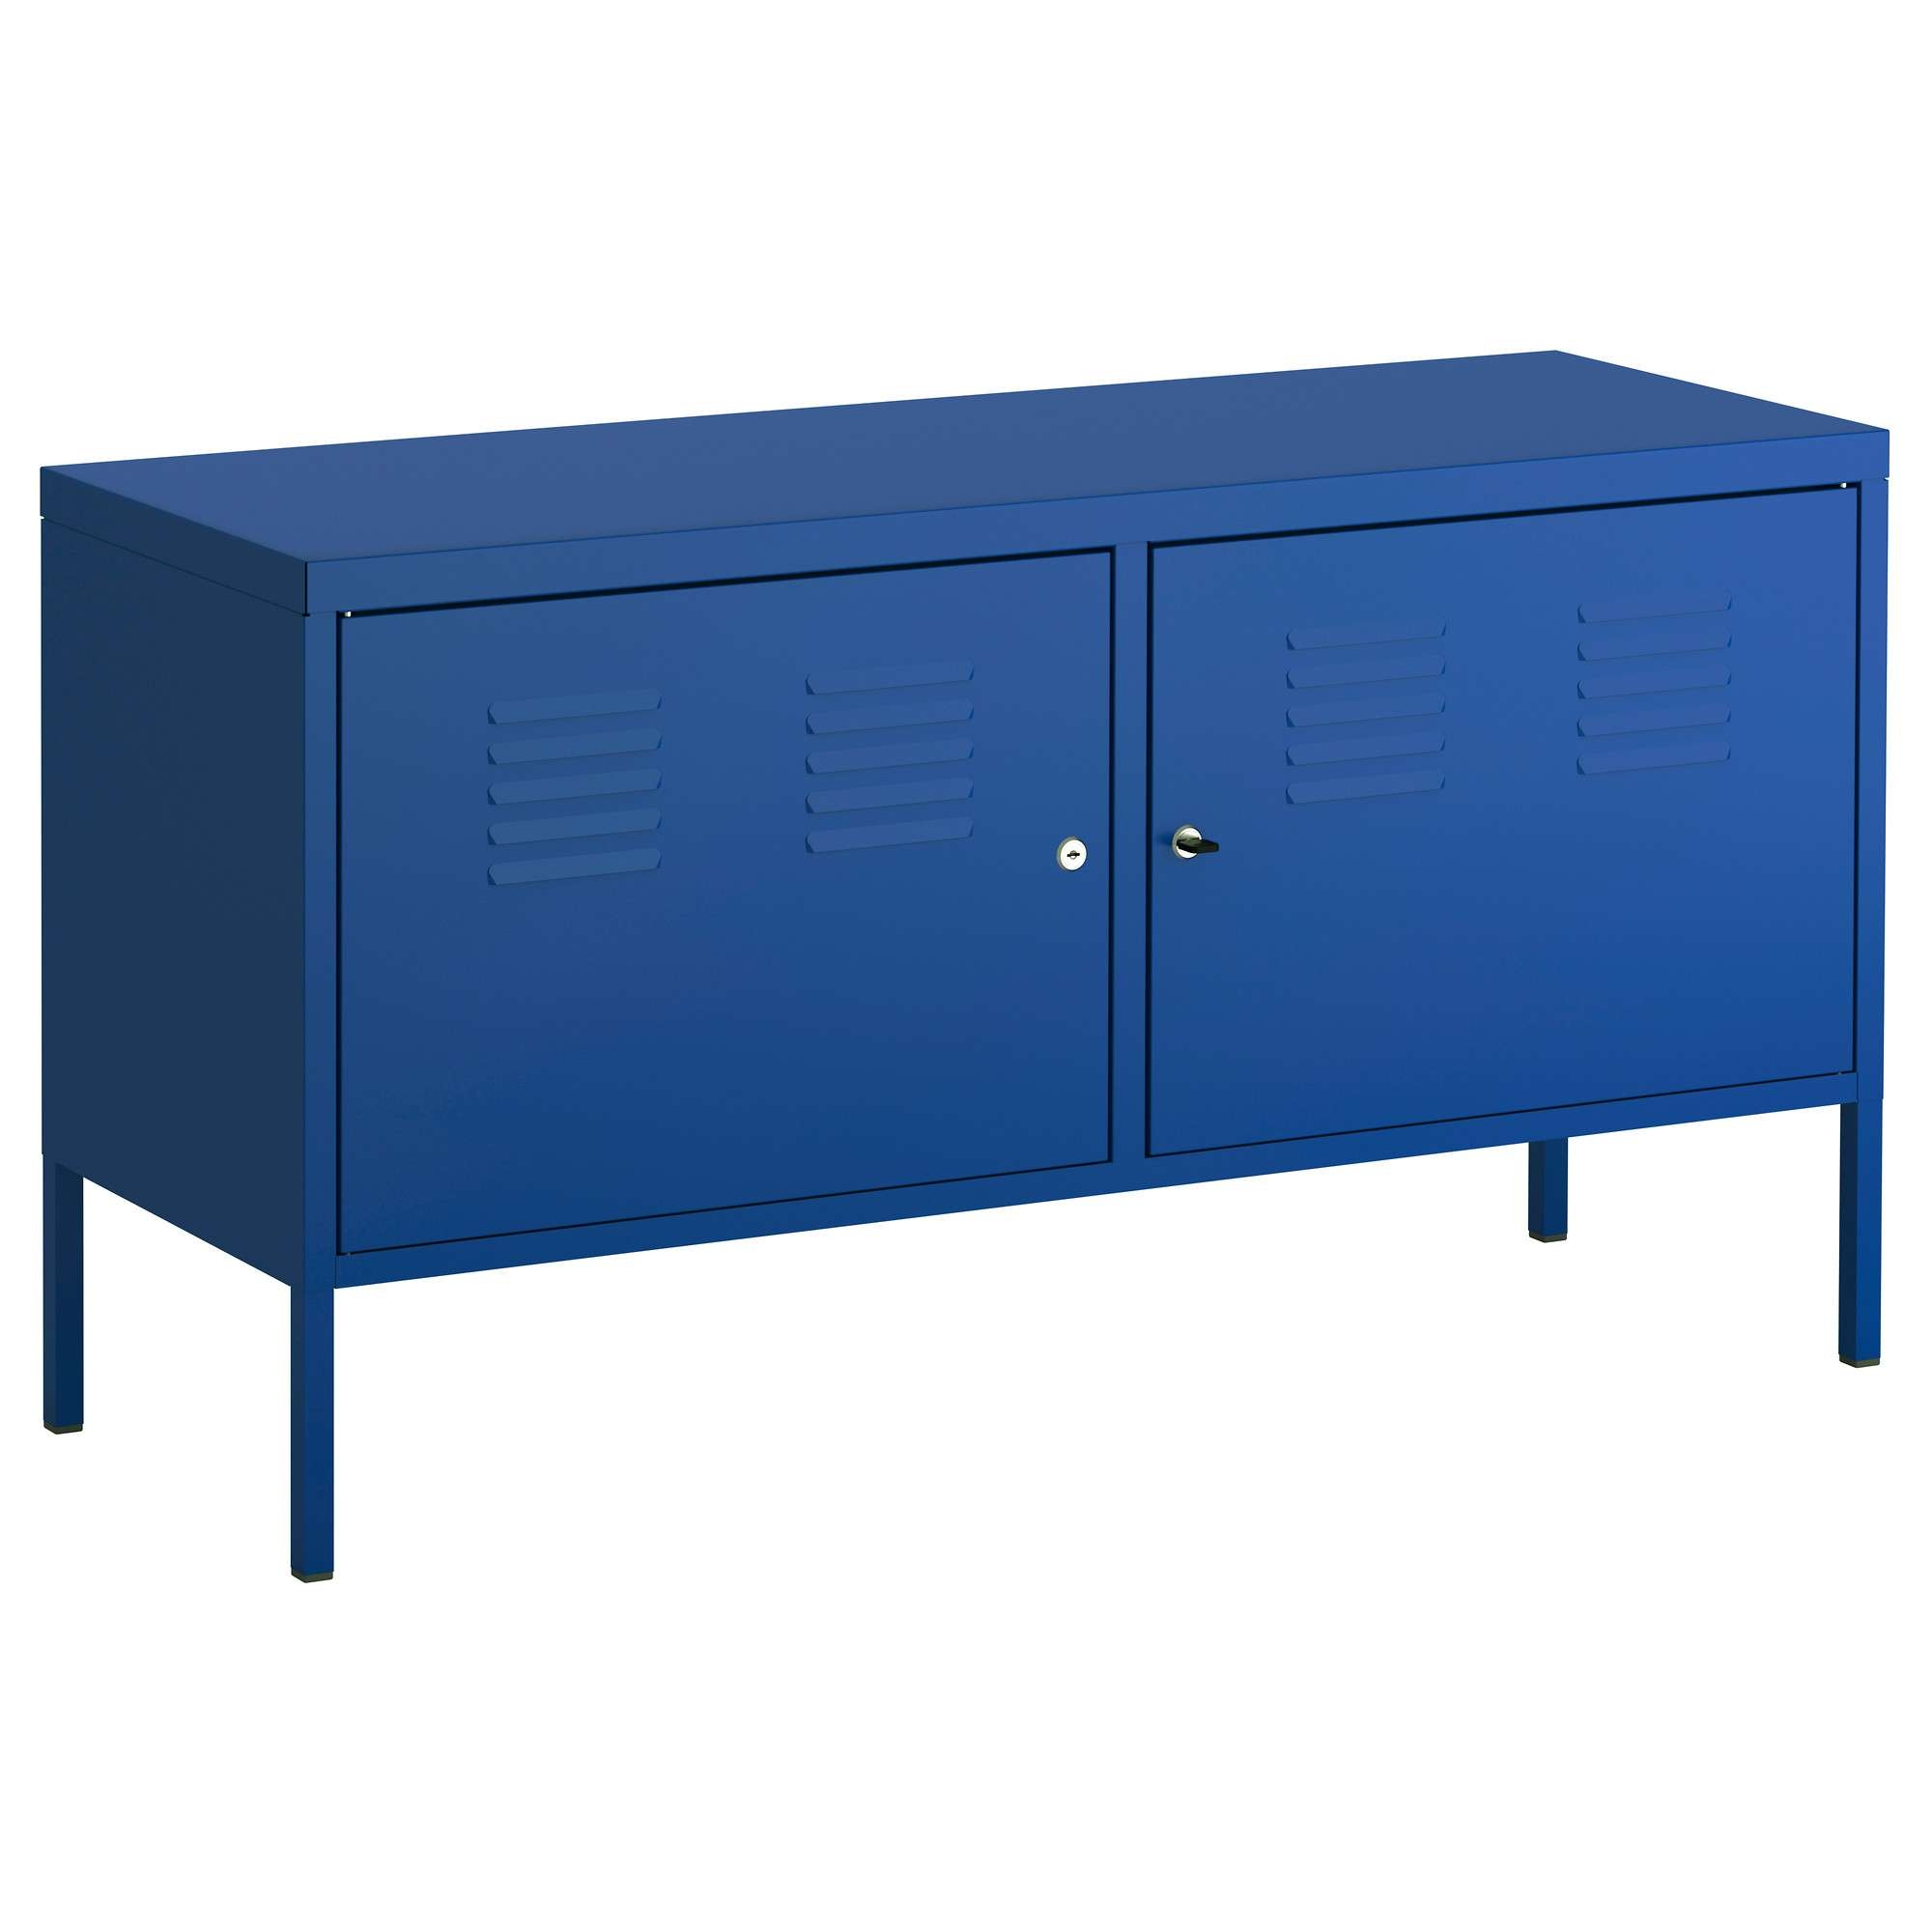 Small Tv Stands Ikea Ps Cabinet Blue Width Depth ~ Idolza Throughout Blue Tv Stands (View 14 of 15)